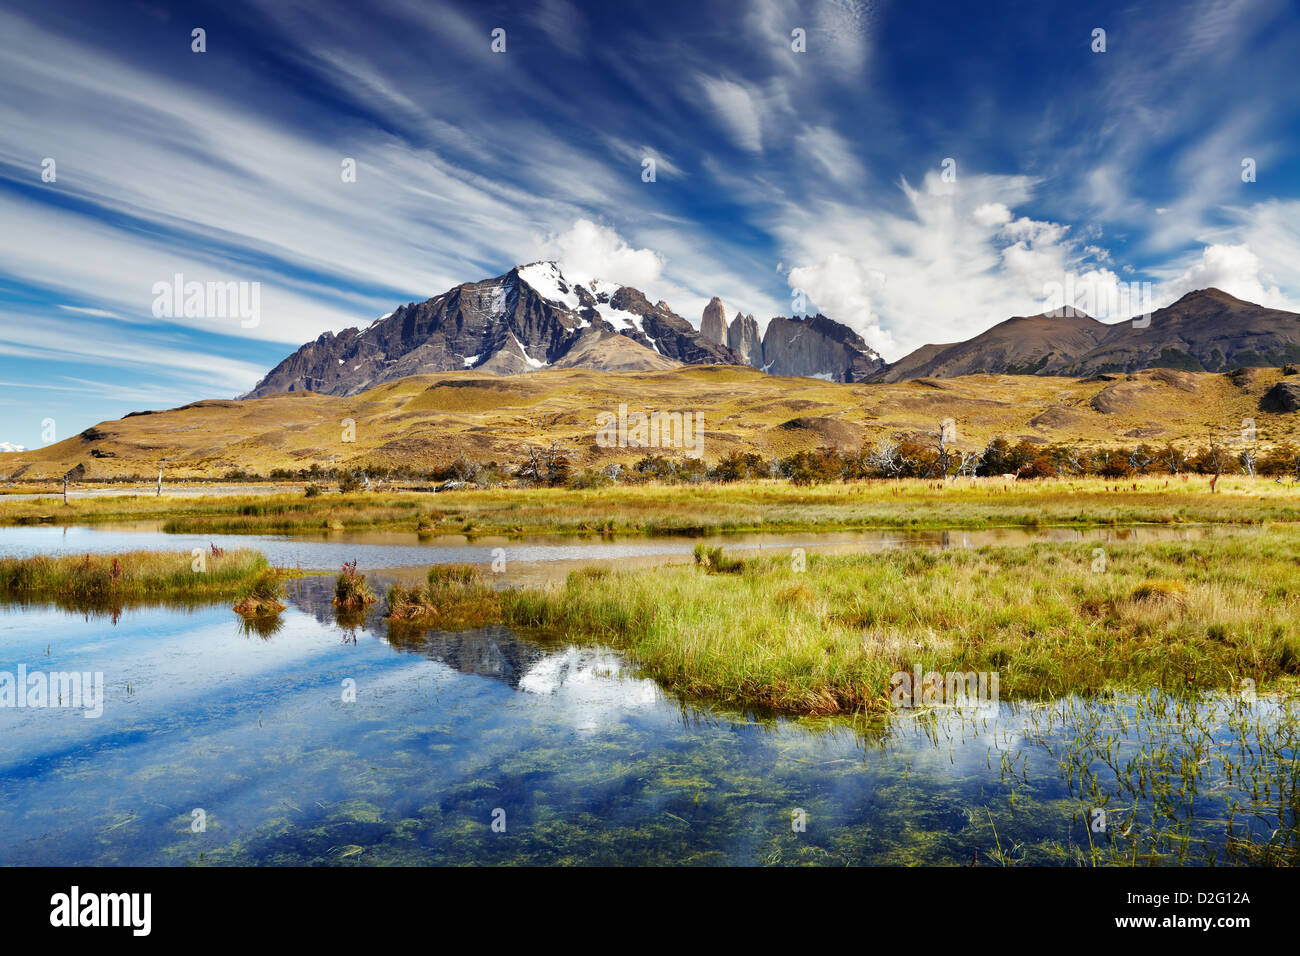 Torres del Paine National Park, Patagonia, Chile - Stock Image